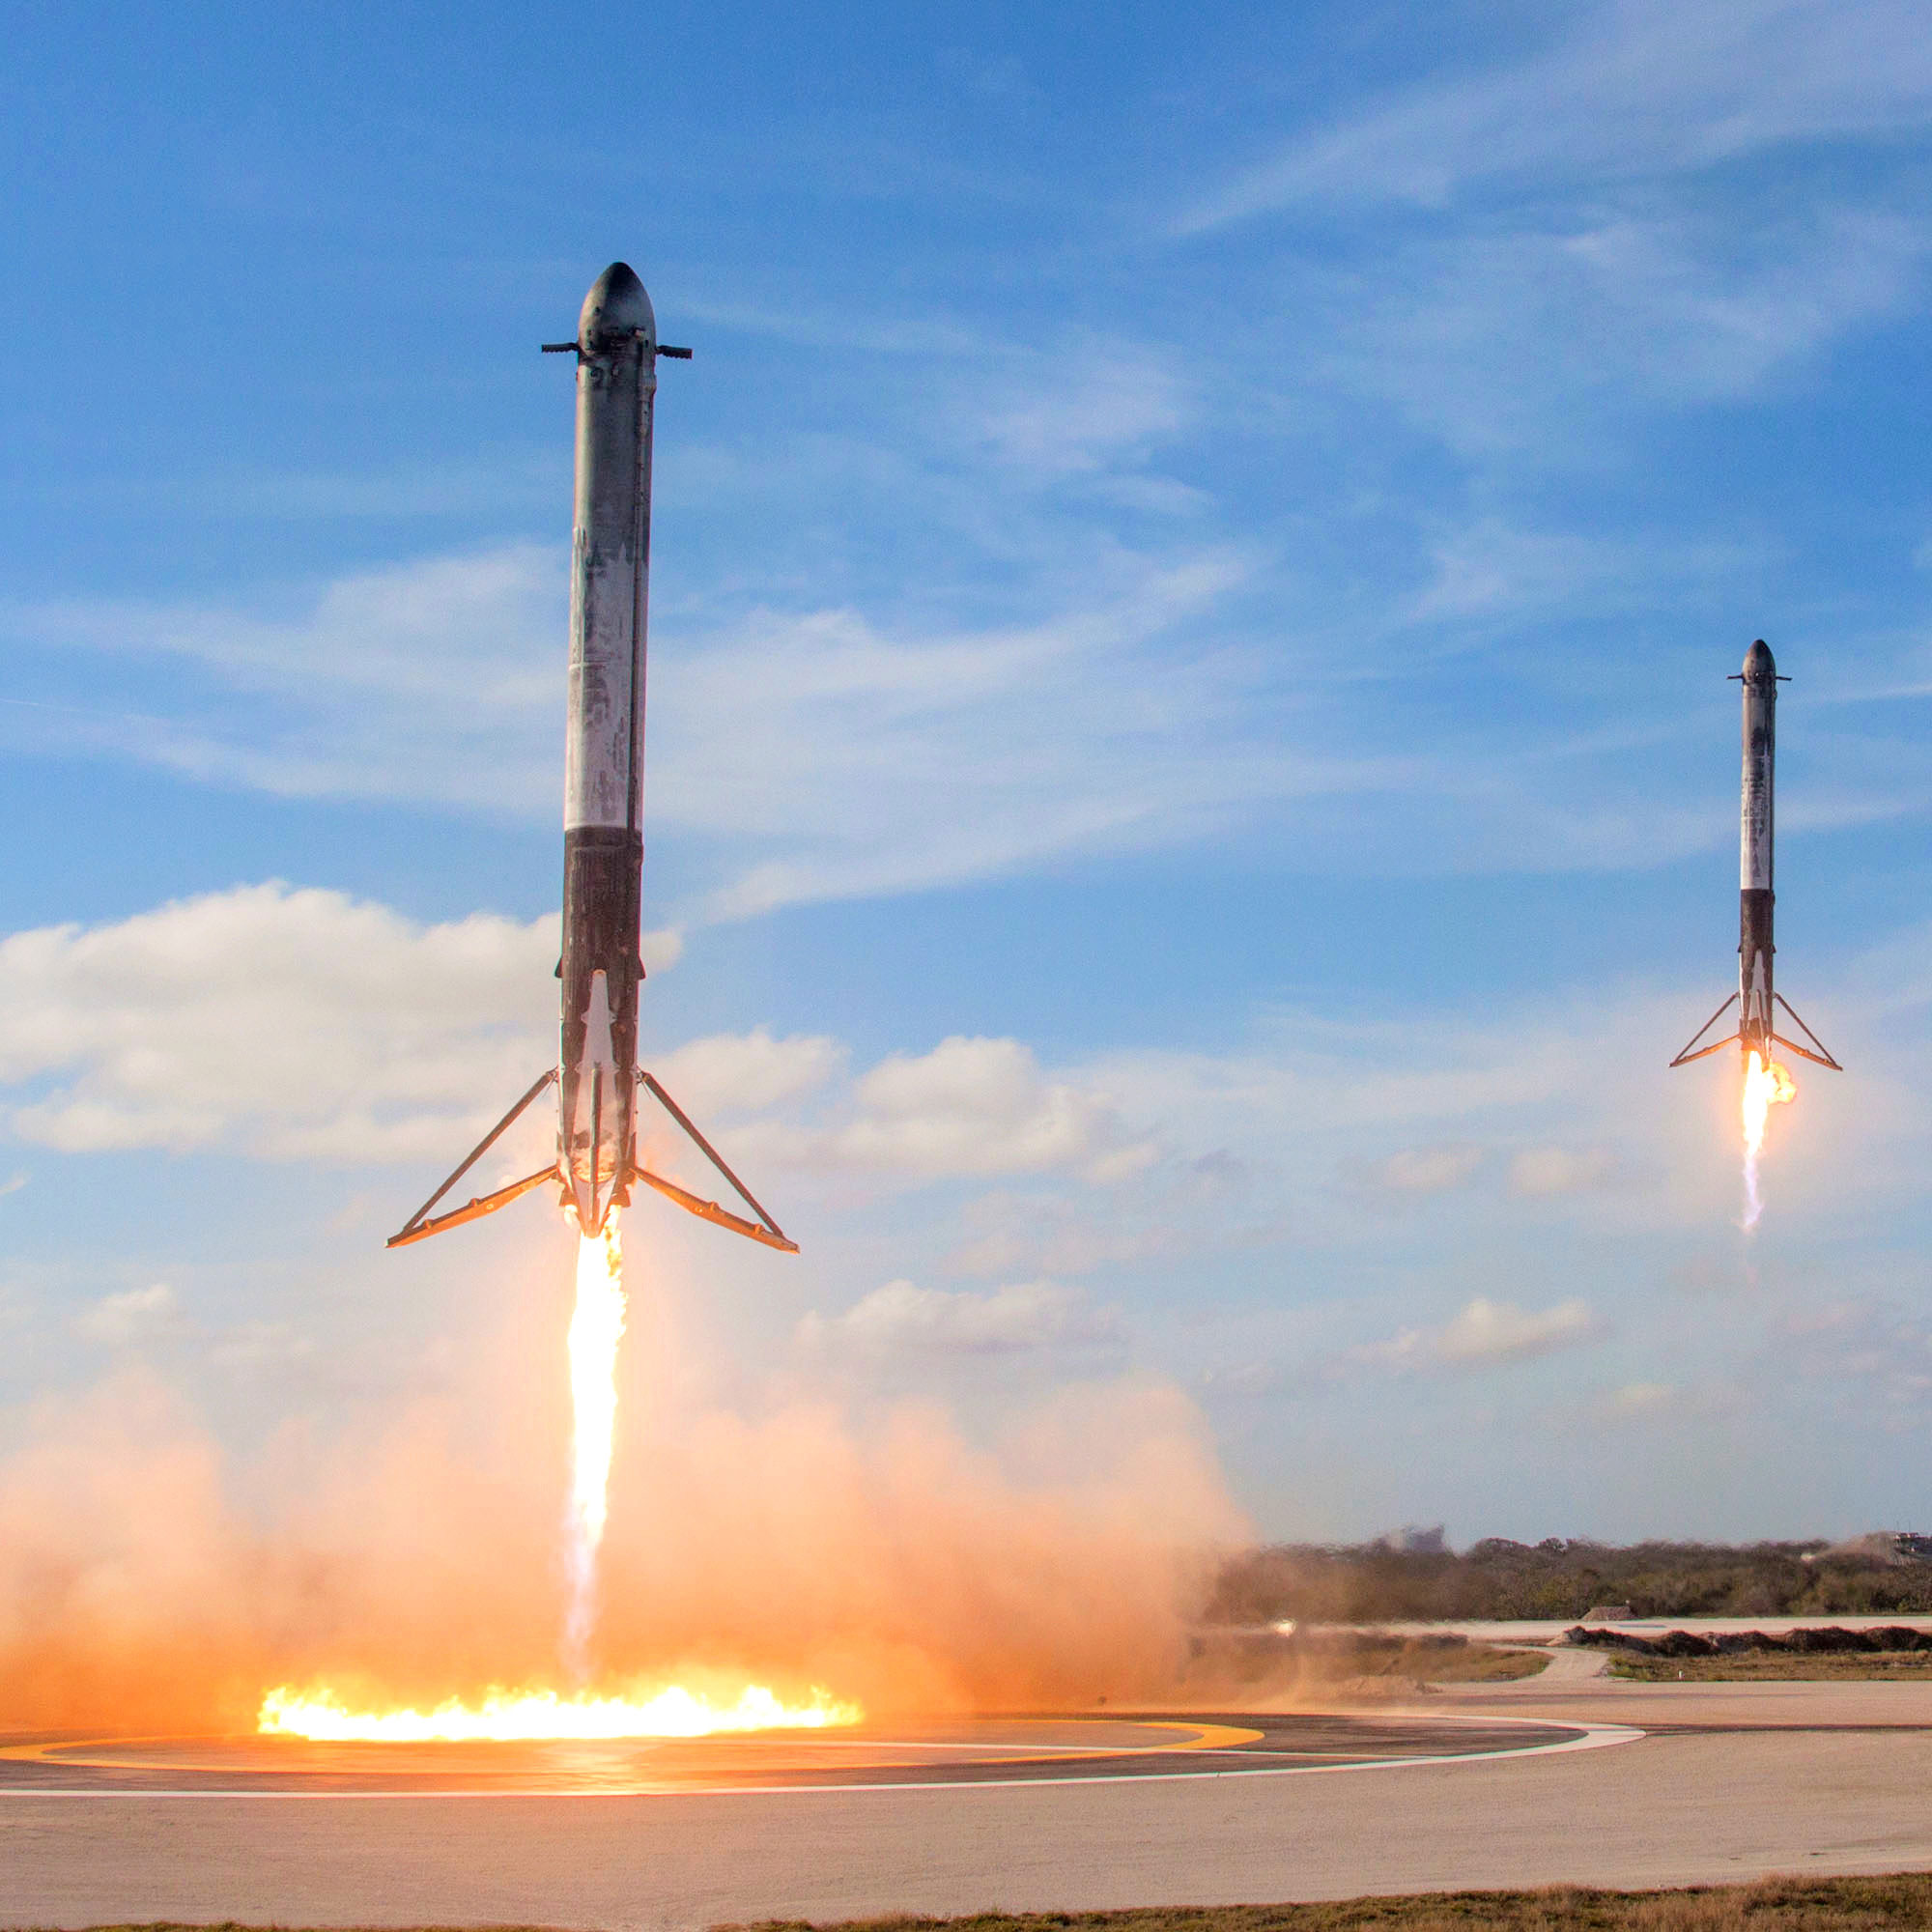 200323_AirCampus_ASTG-by-wikimedia-spacex